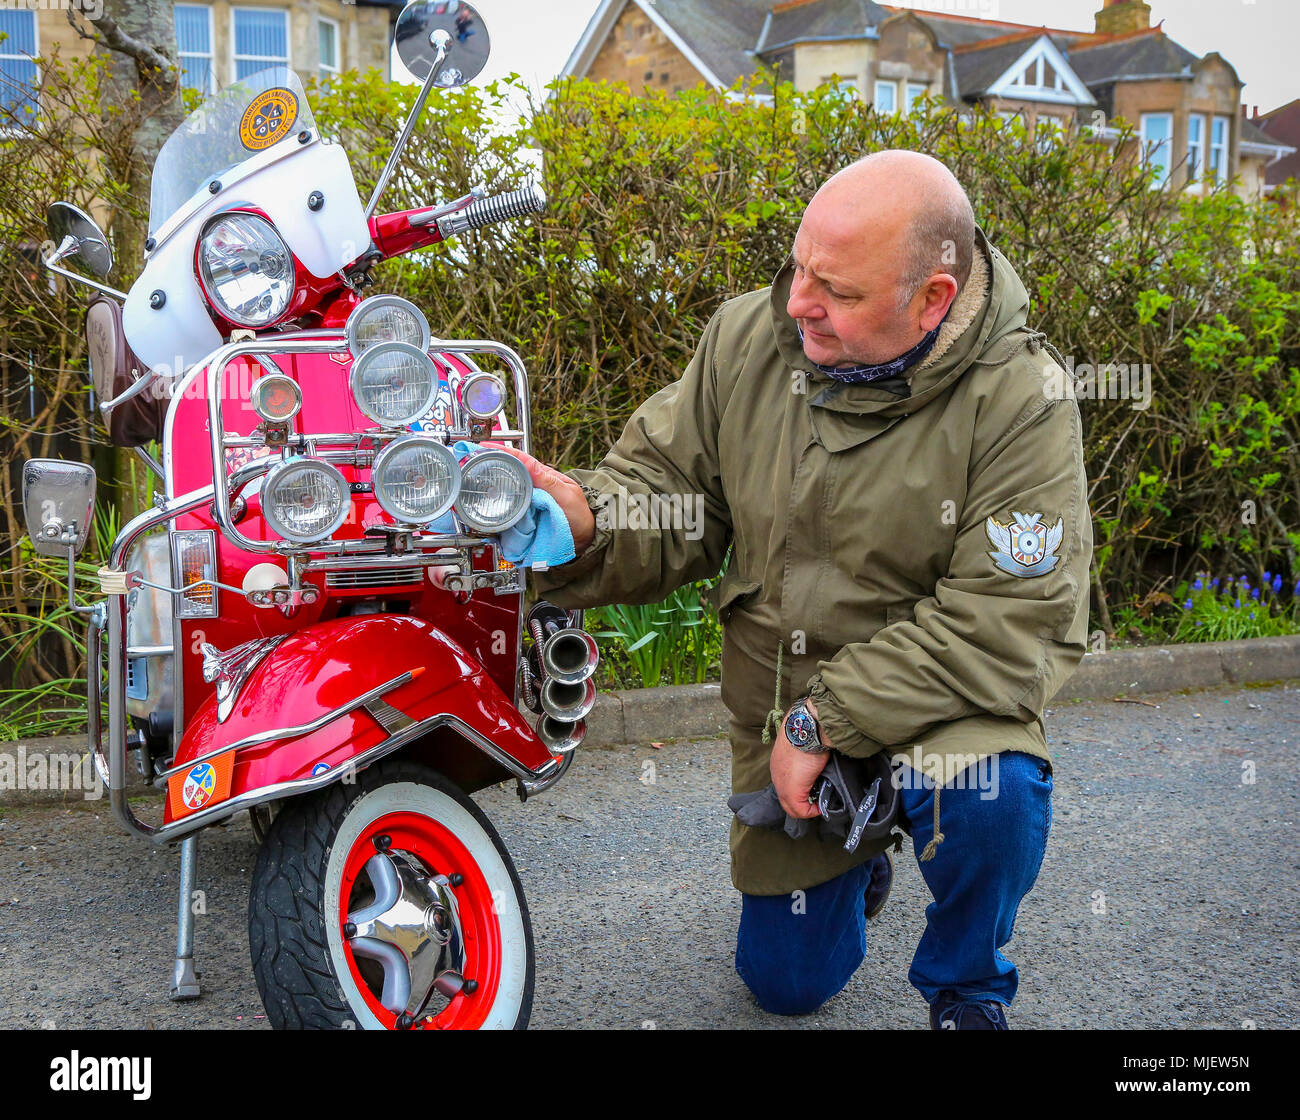 Troon, Ayrshire, UK  5th May, 2018  Over 100 scooters, riders and